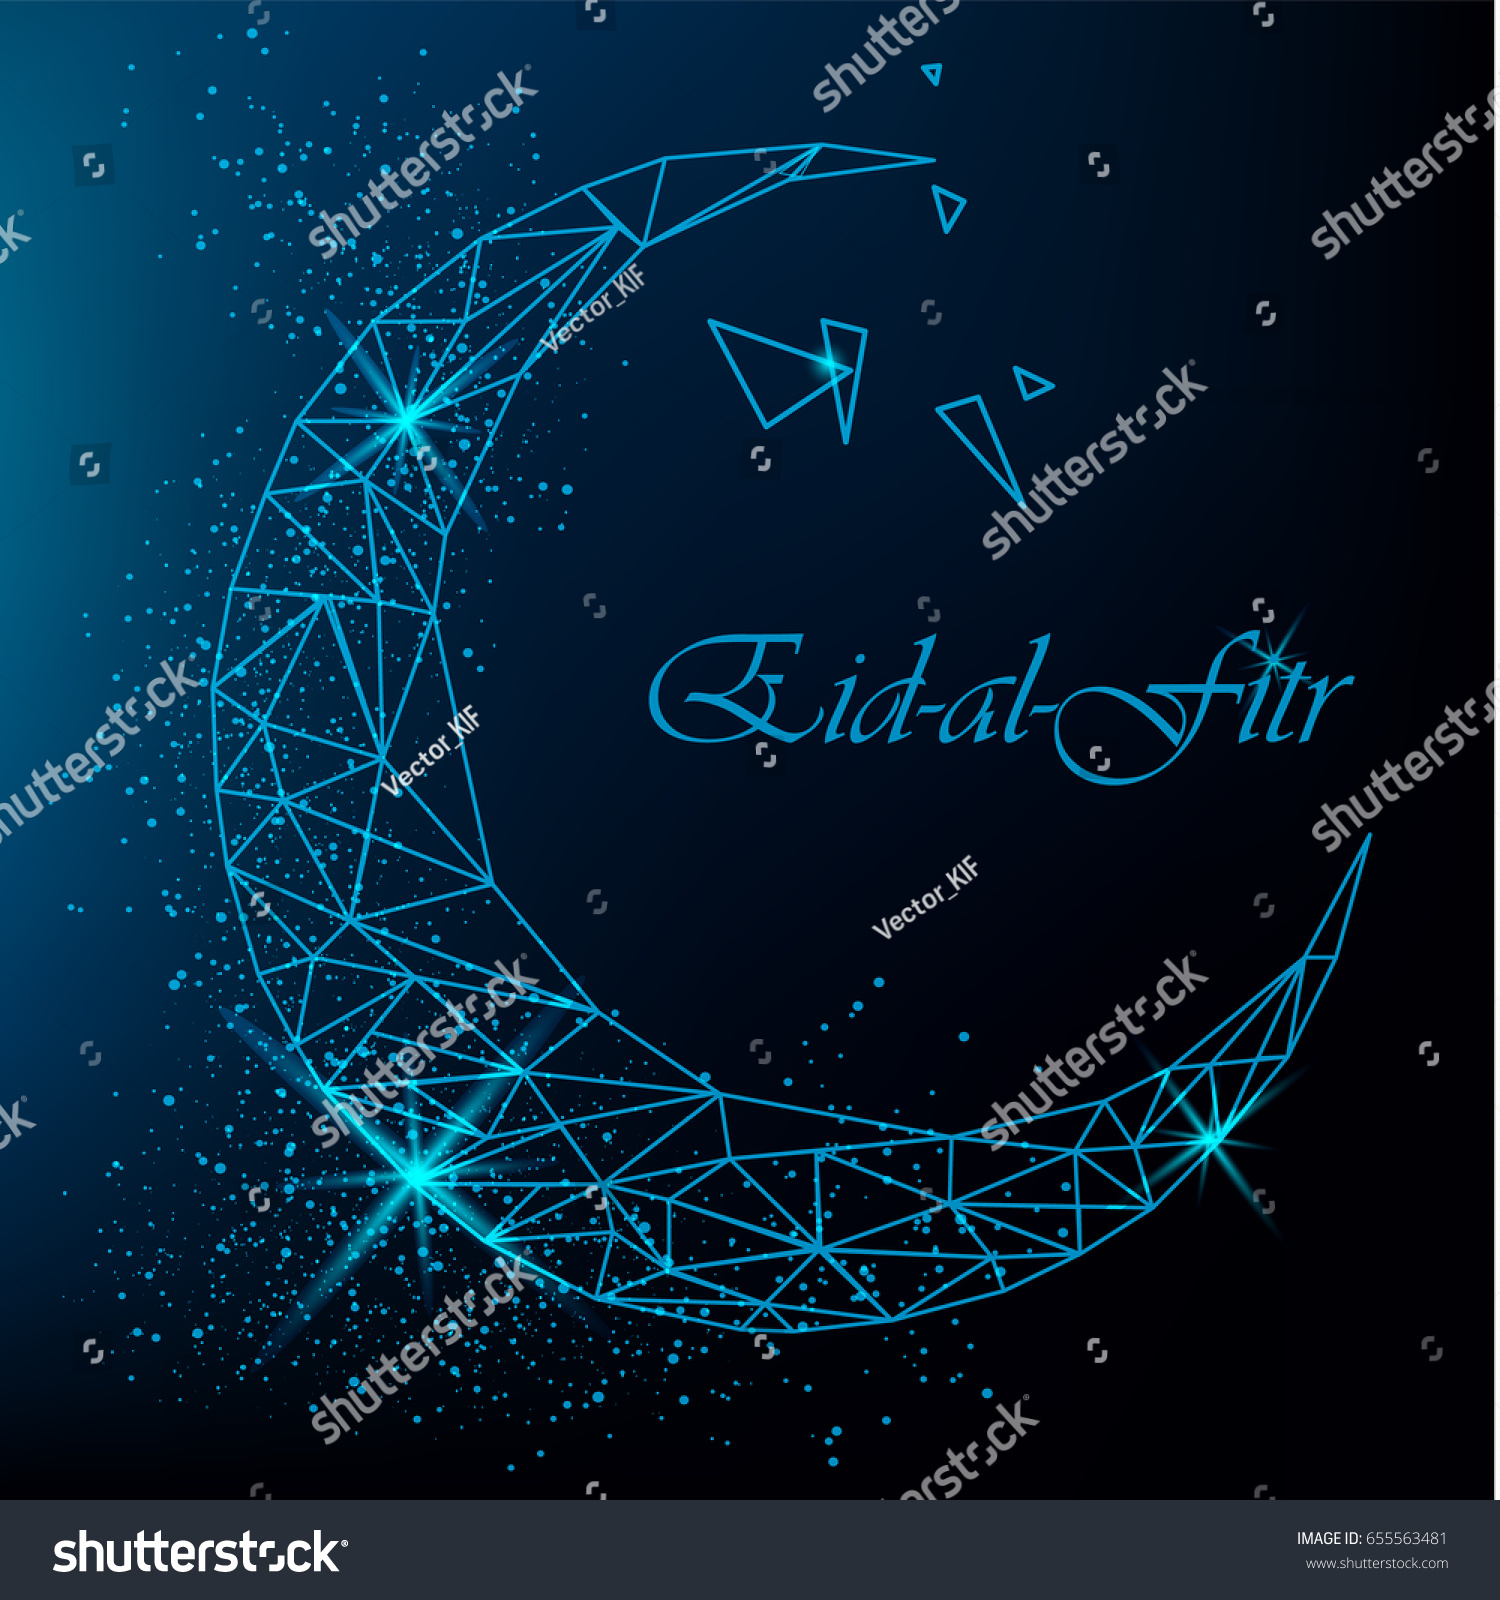 Eid al fitr beautiful greeting card stock vector 655563481 eid al fitr beautiful greeting card with polygonal moon with glitter on blue background eid kristyandbryce Images